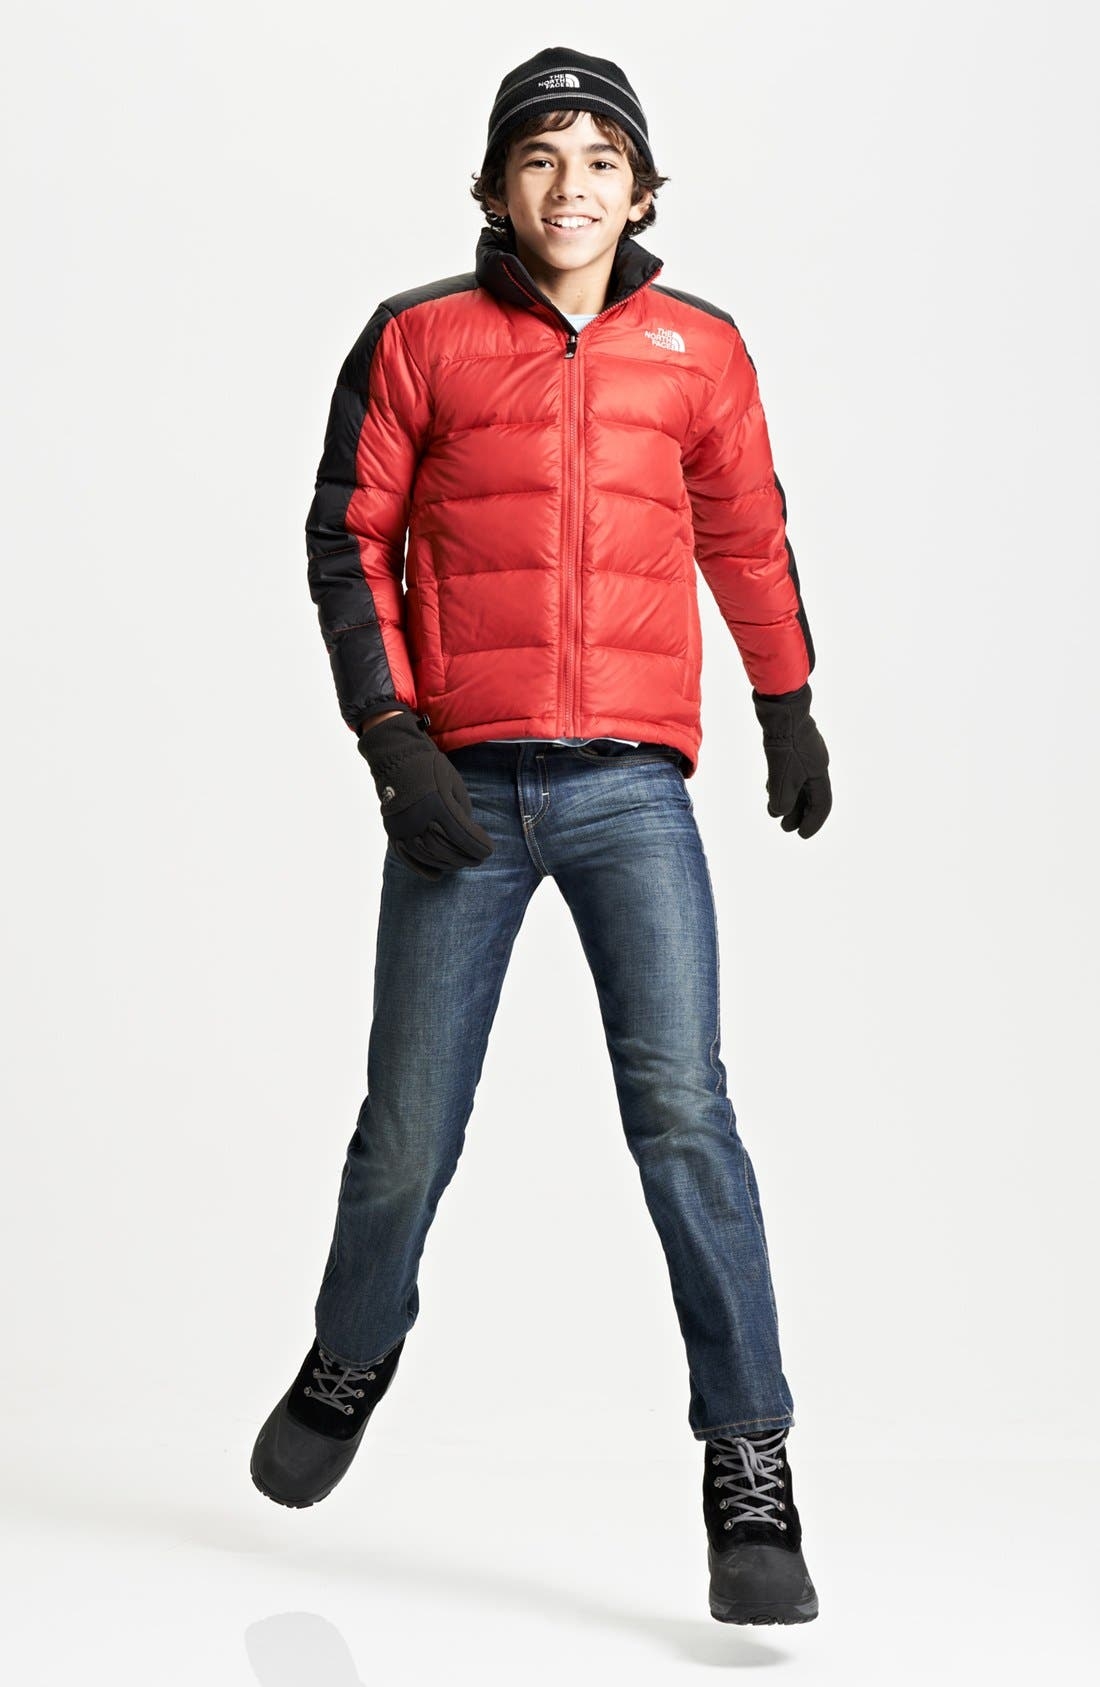 Alternate Image 1 Selected - The North Face Jacket & Tucker + Tate Jeans (Big Boys)